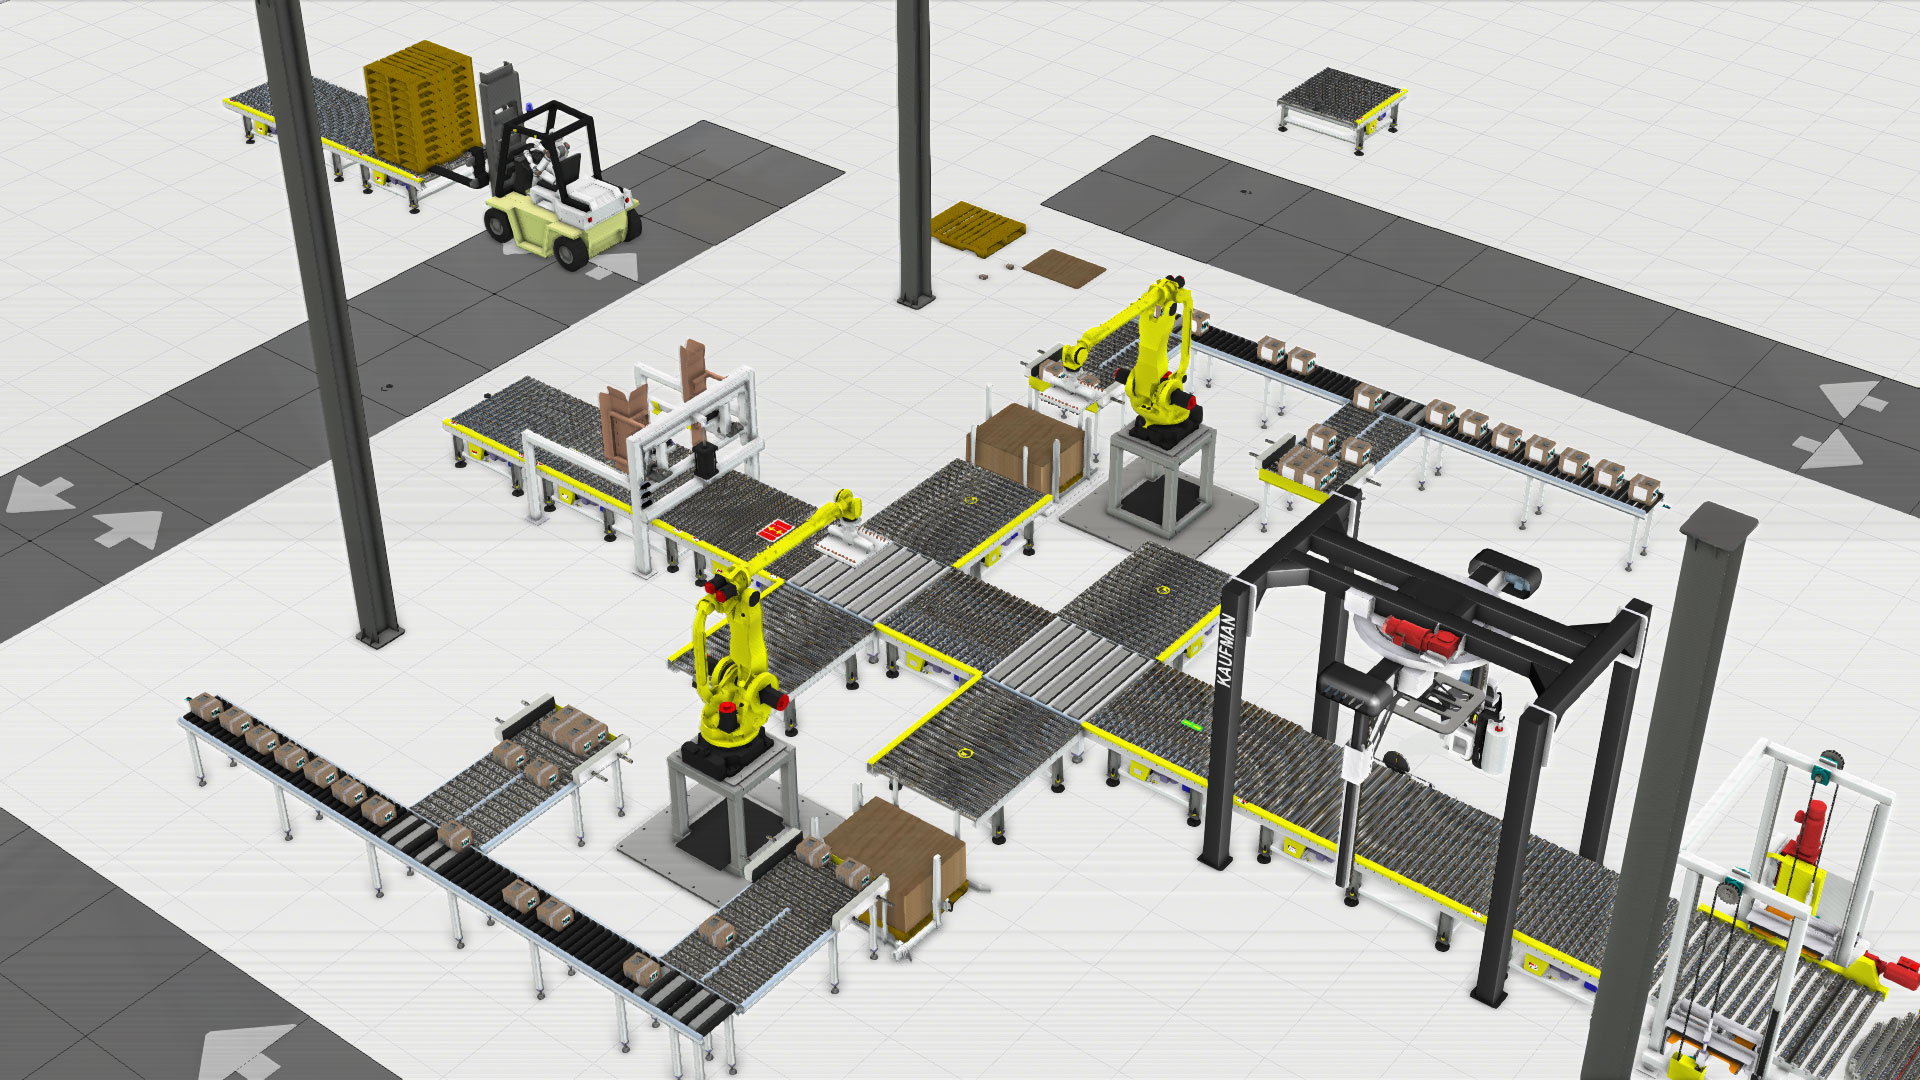 A Visual components simulation of a palletizing and packing line